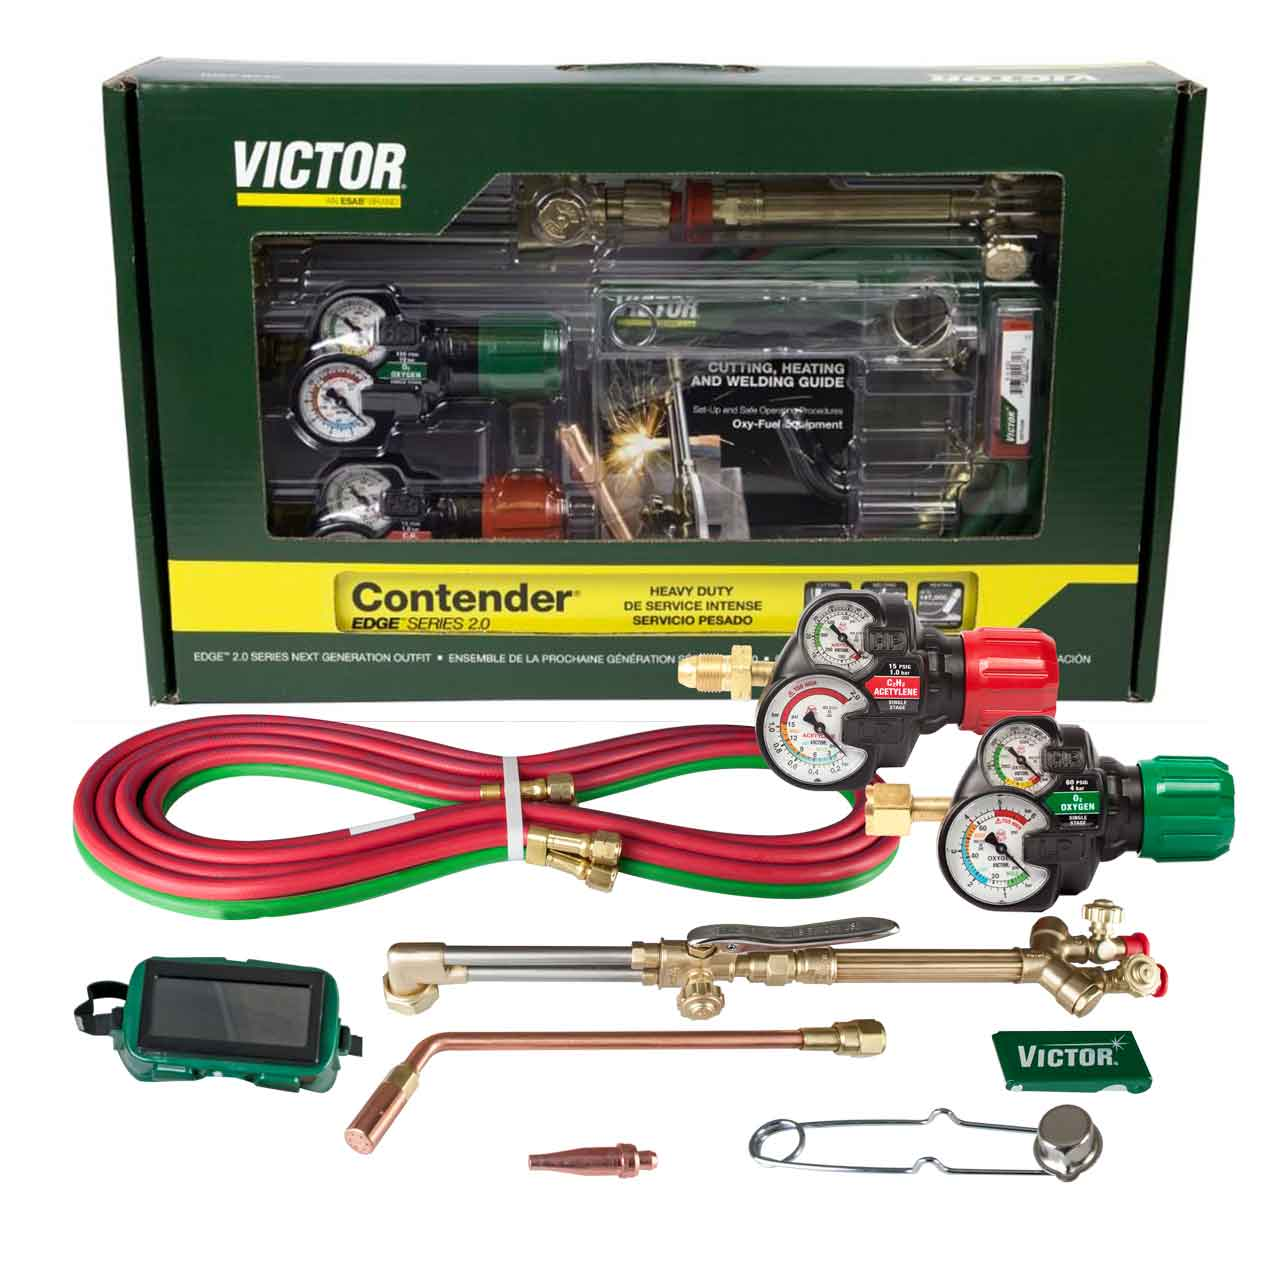 Victor 0384-2130 Contender 540/510 Edge 2 0, Acetylene Cutting Torch Outfit